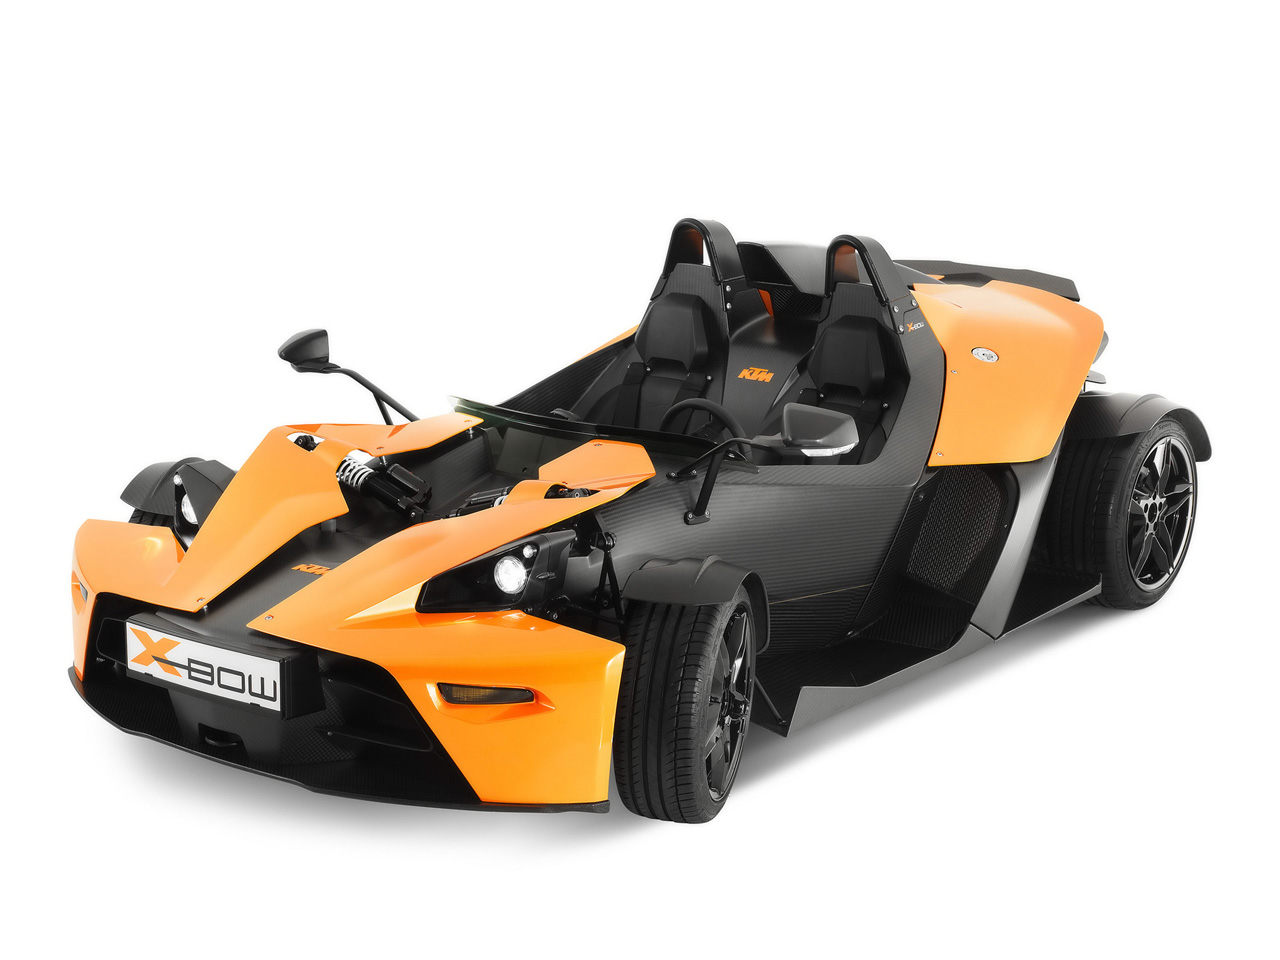 sexy sports cars the ktm x bow. Black Bedroom Furniture Sets. Home Design Ideas